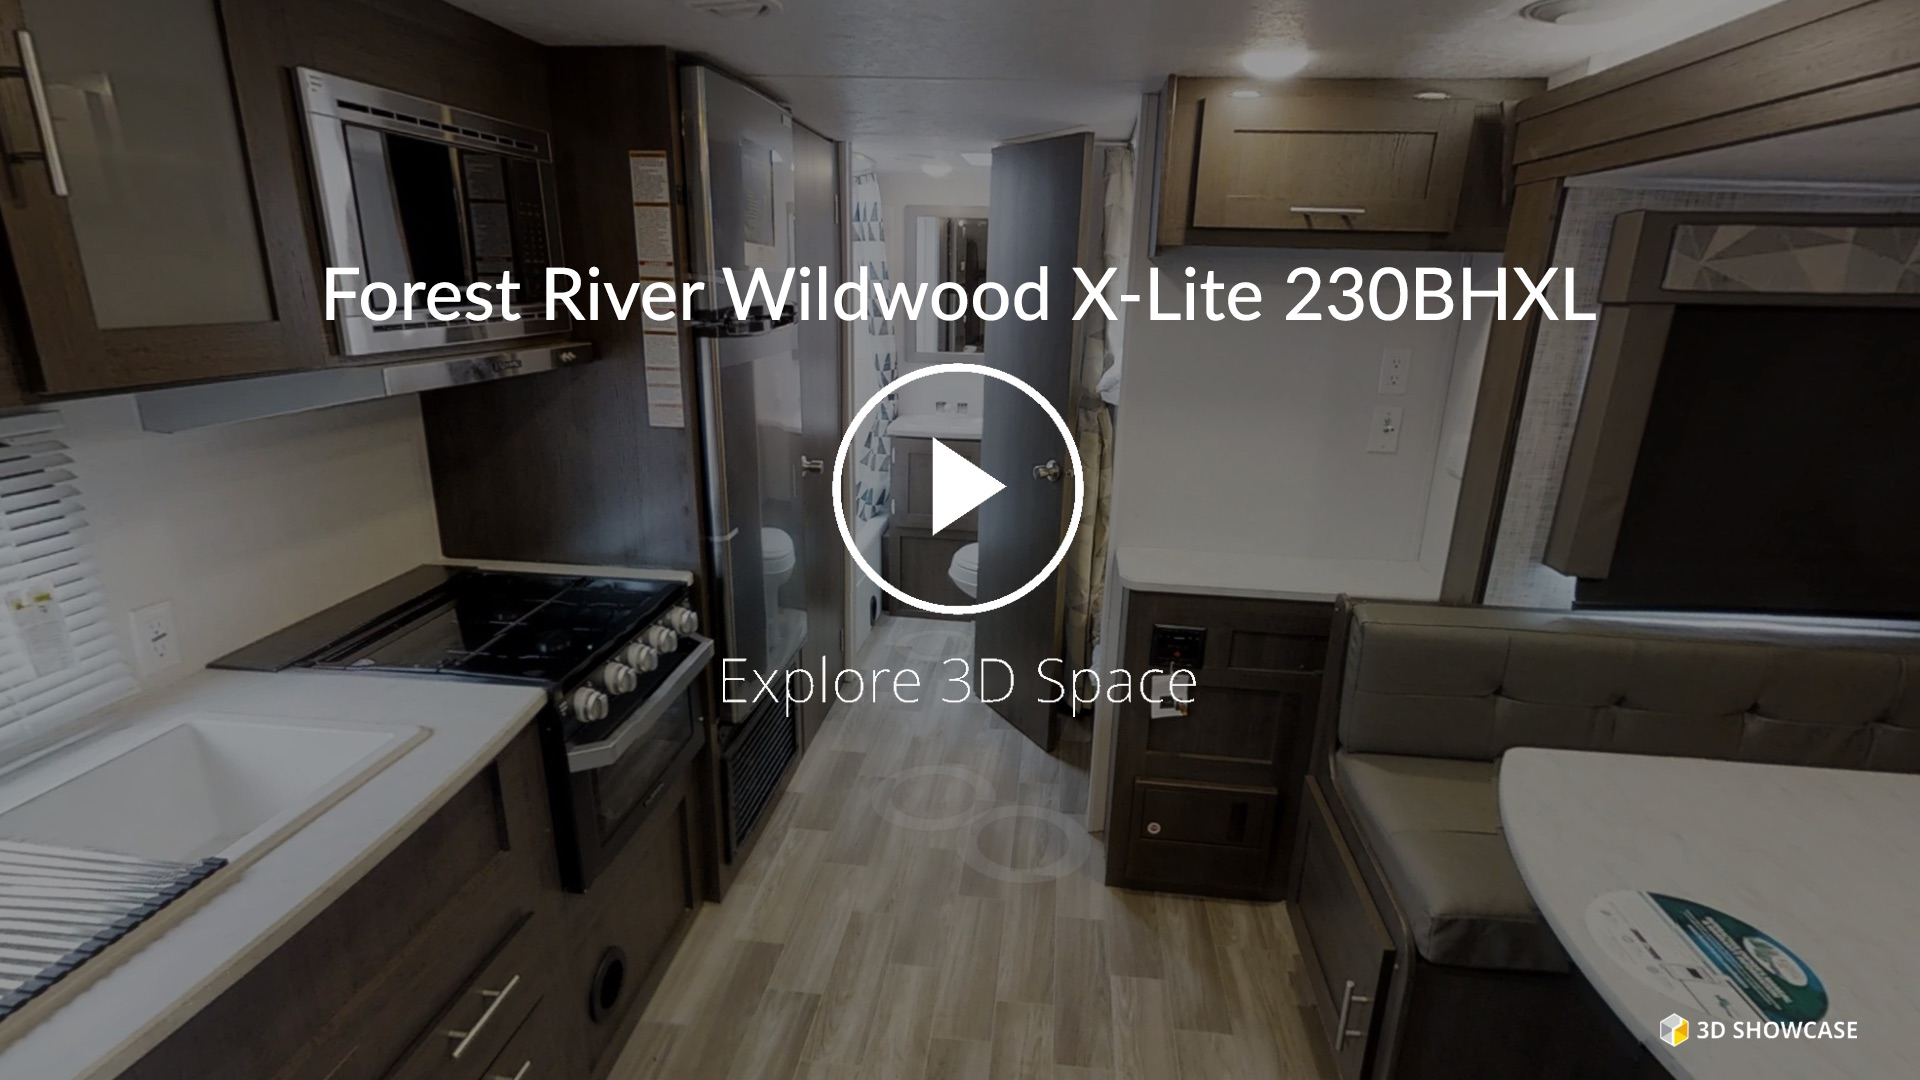 Forest River Wildwood X-Lite 230BHXL